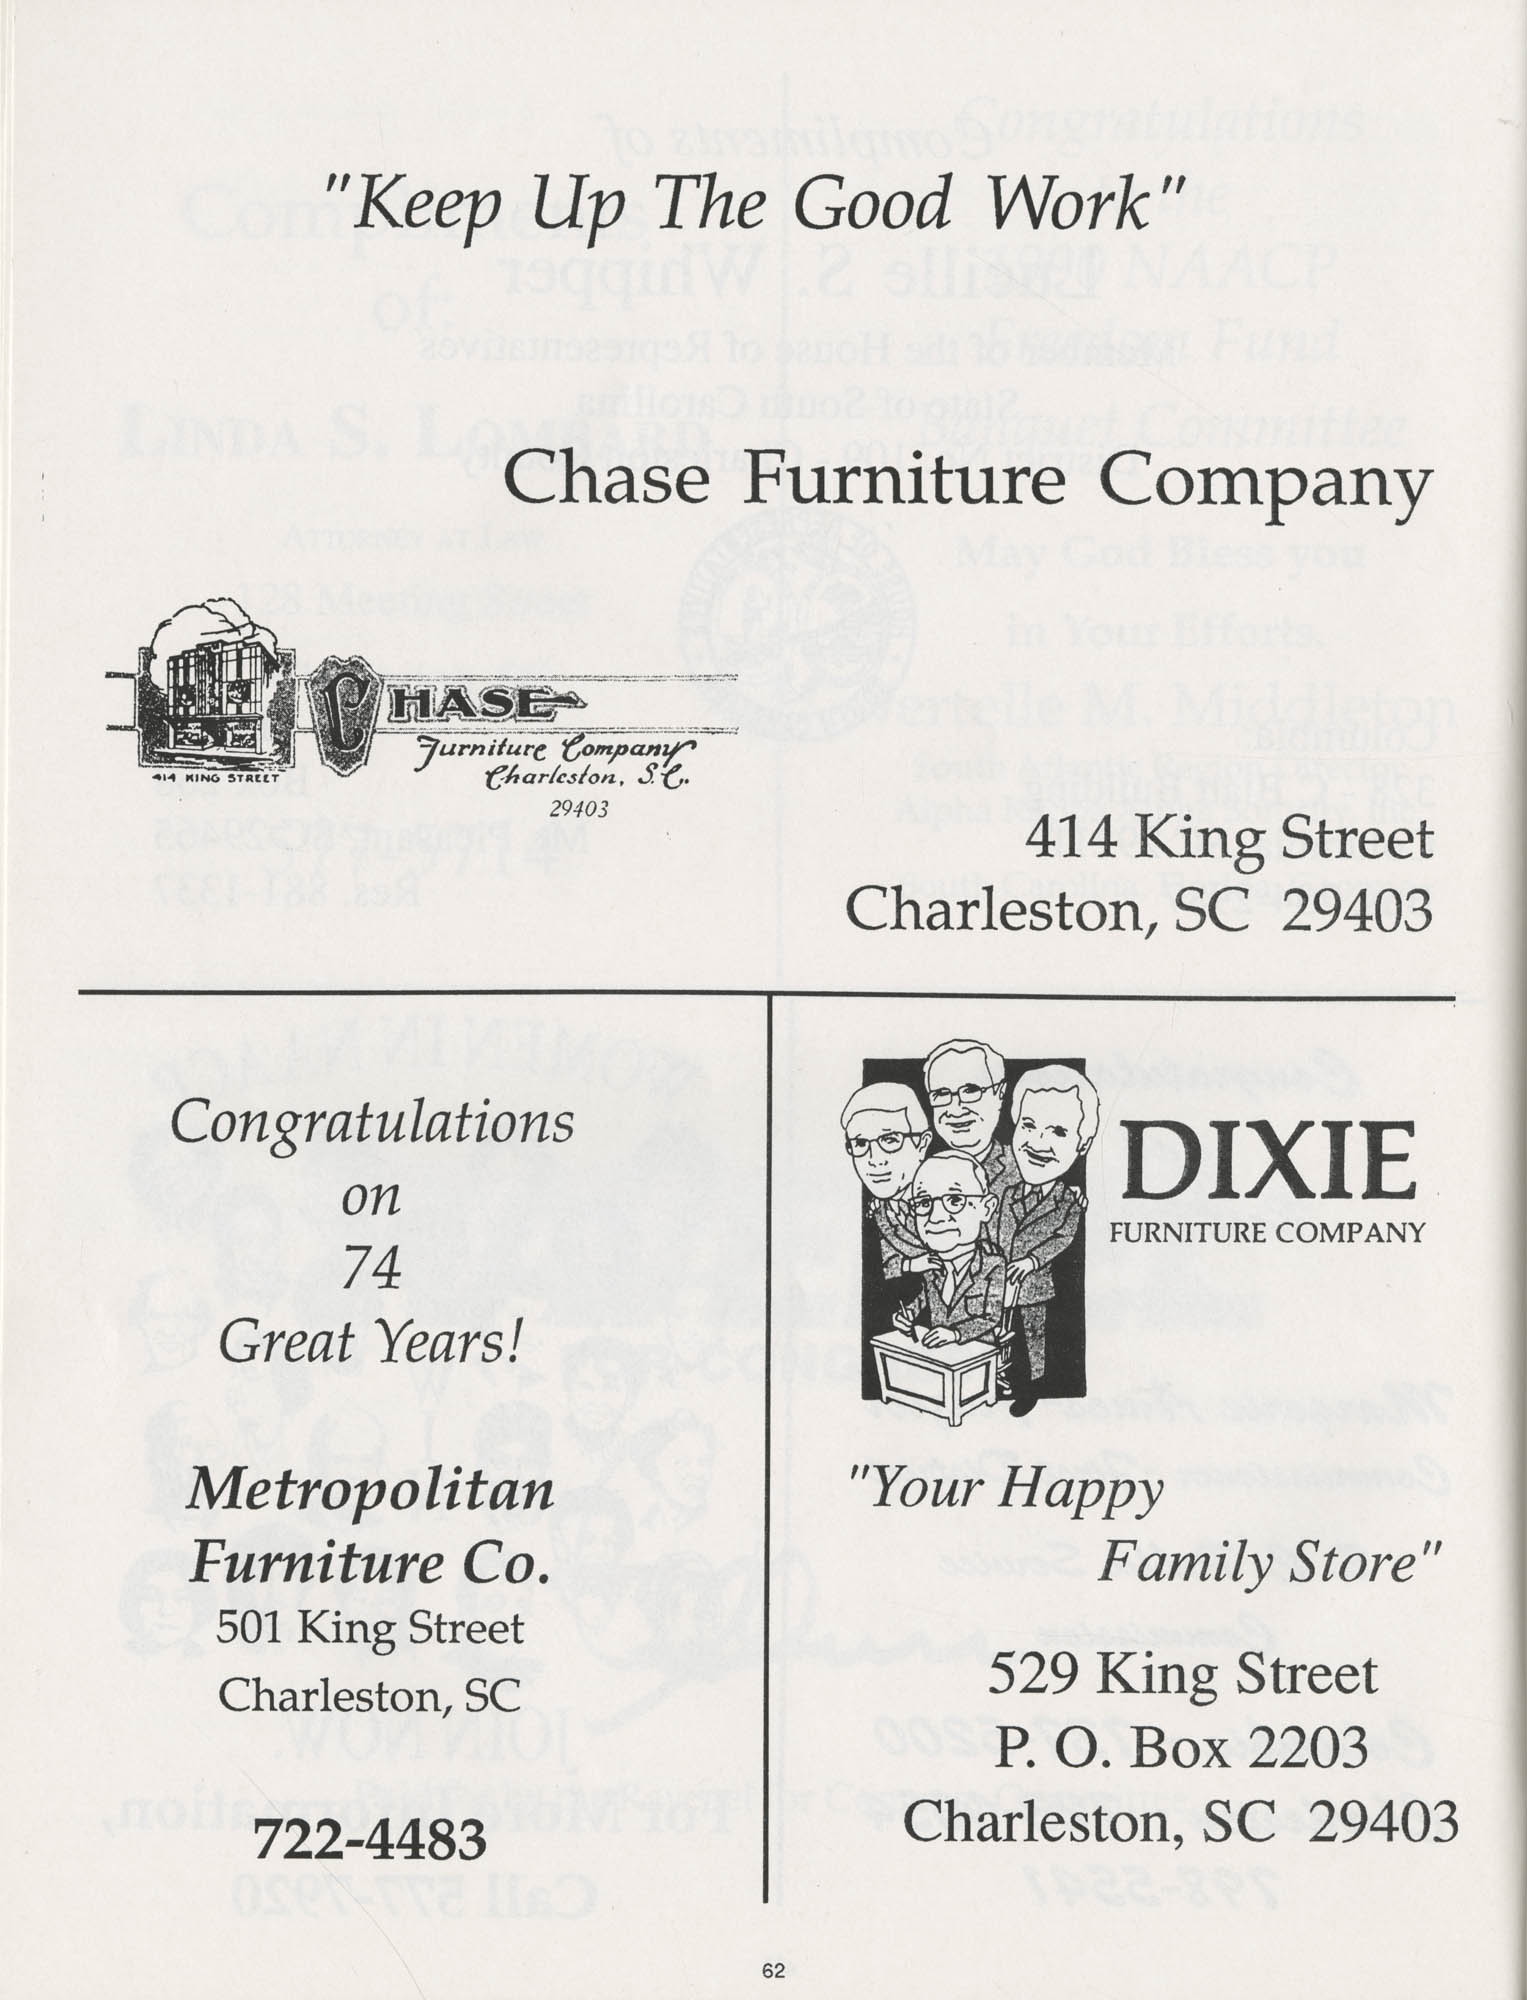 1990 NAACP Freedom Fund Magazine, Charleston Branch of the NAACP, 74th Anniversary, Page 62